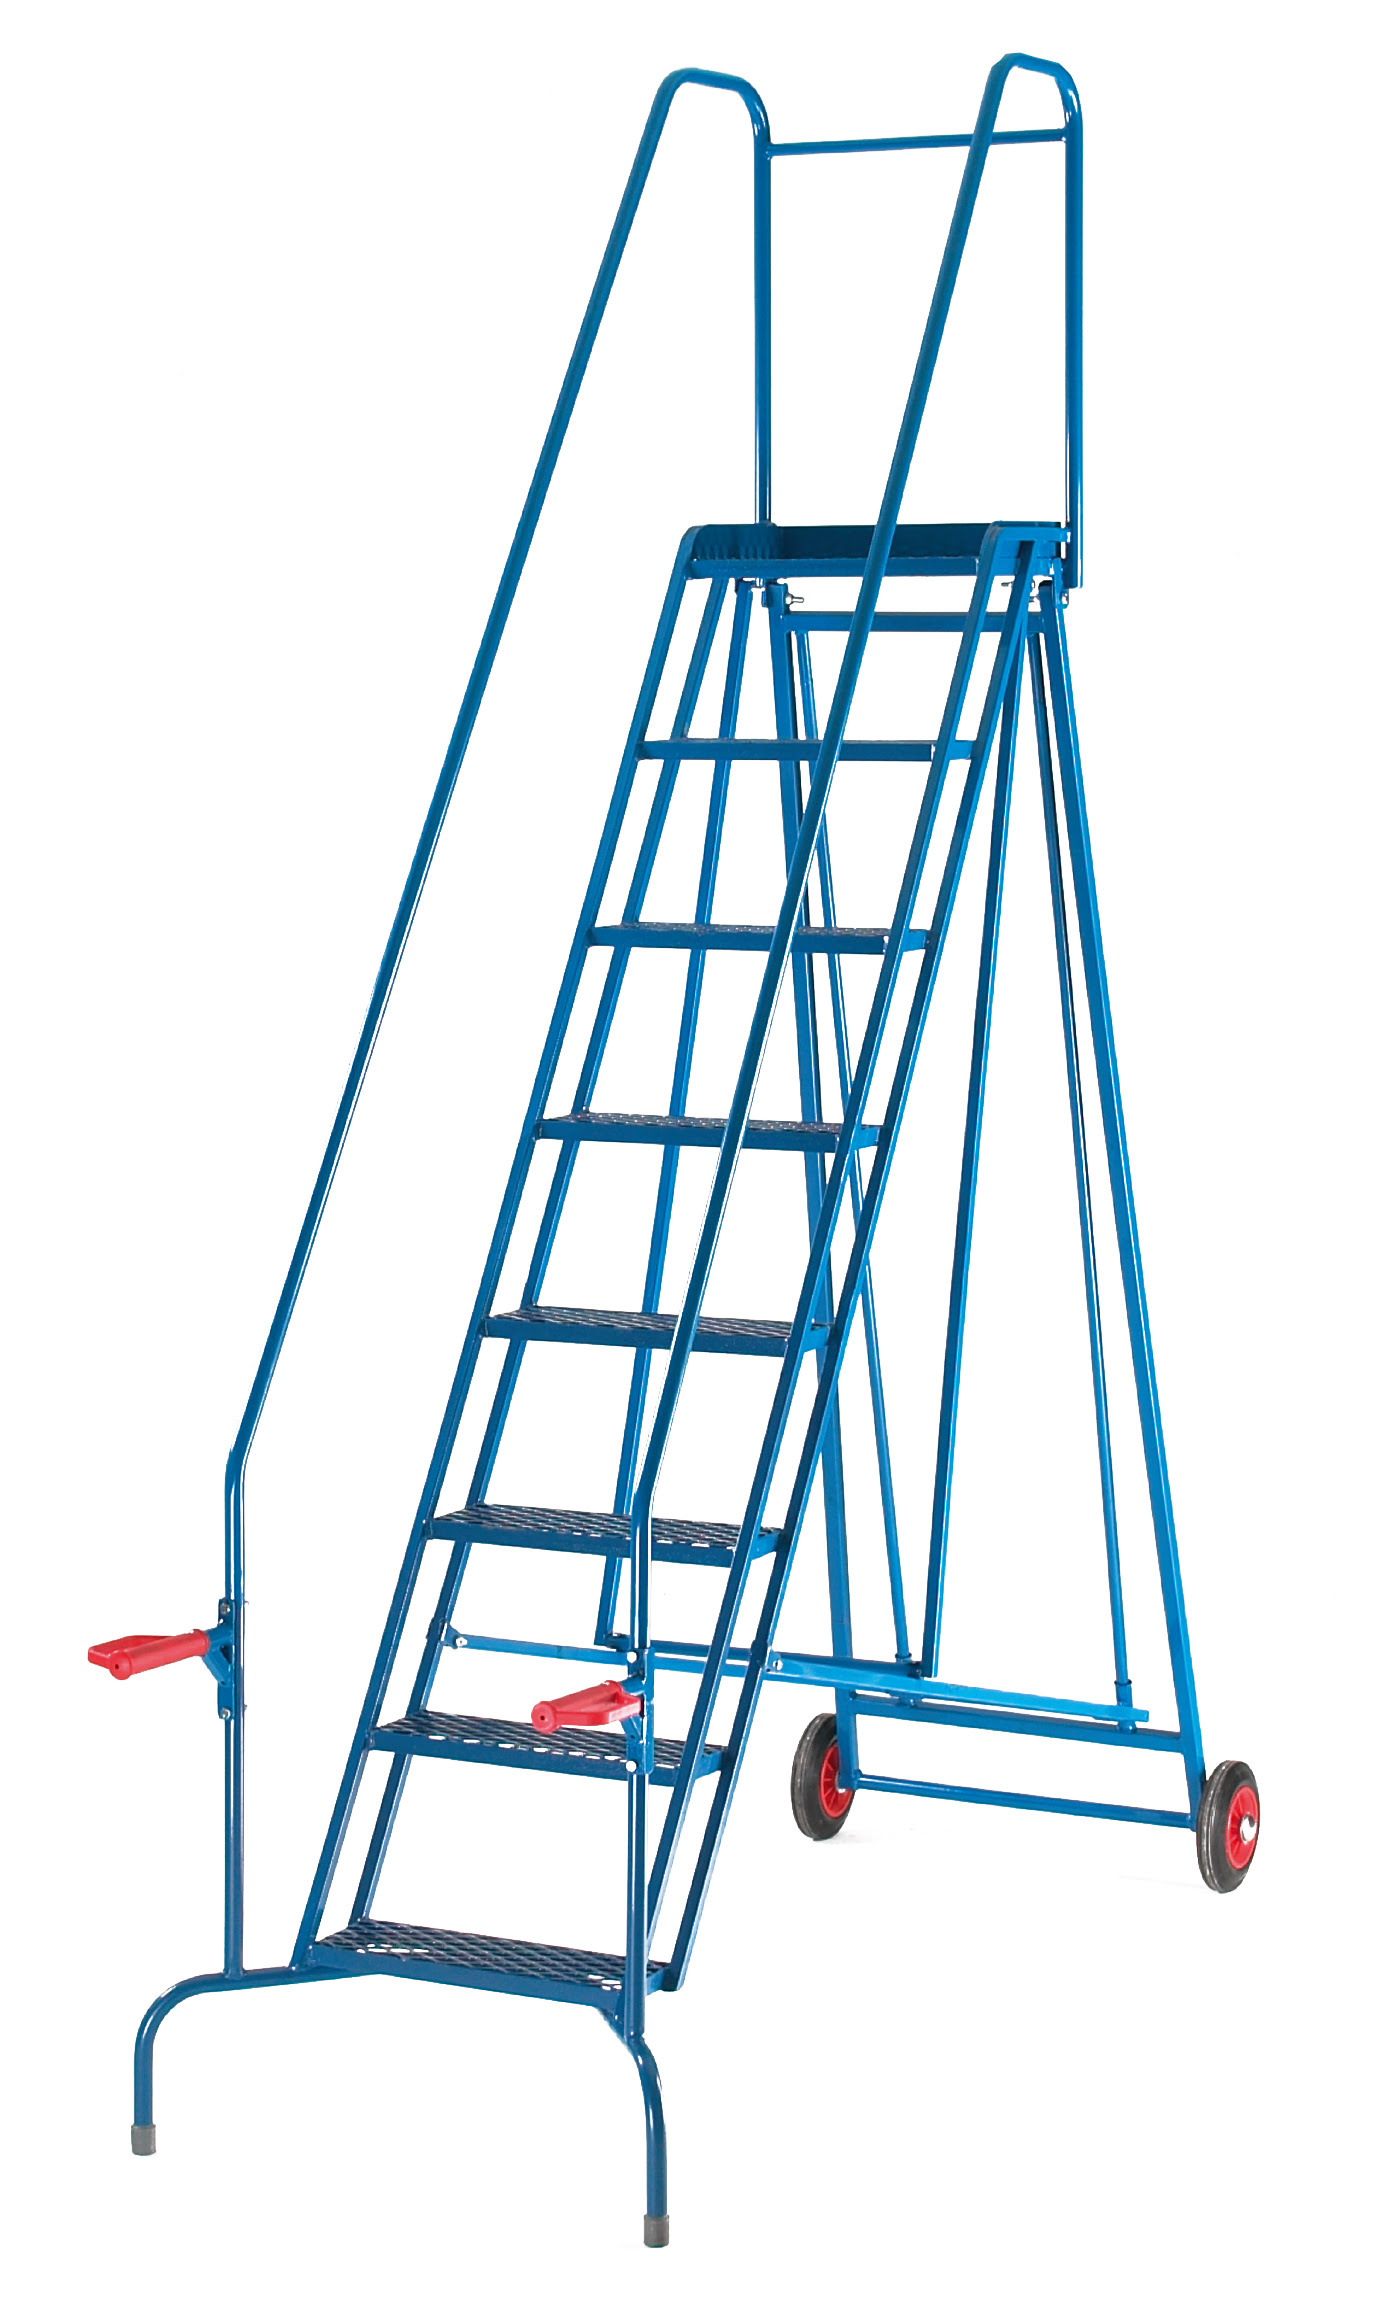 Quick Folding Steps Uk Manufactured Warehouse And Safety